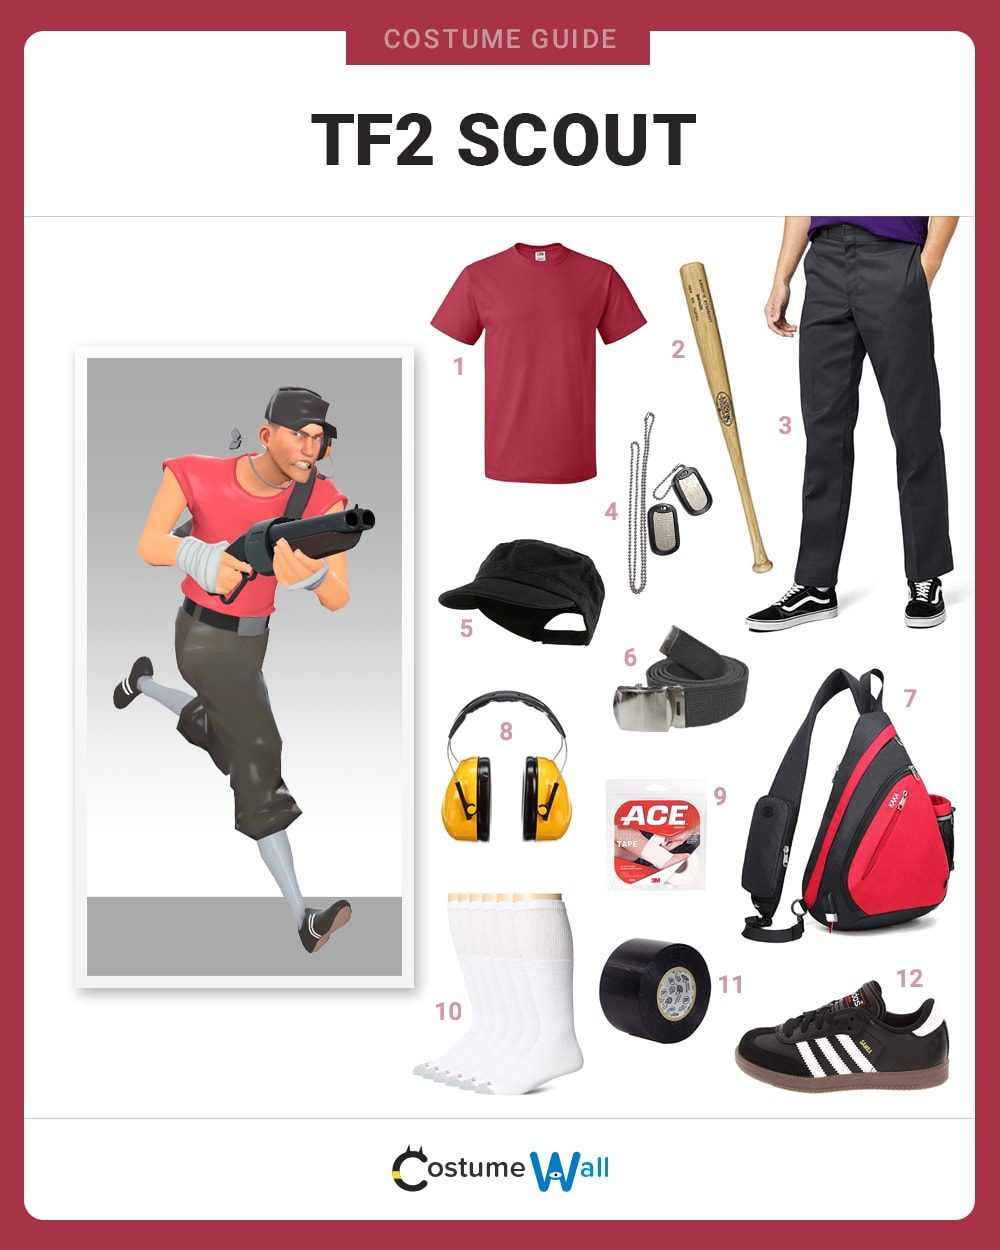 TF2 Scout Costume Guide